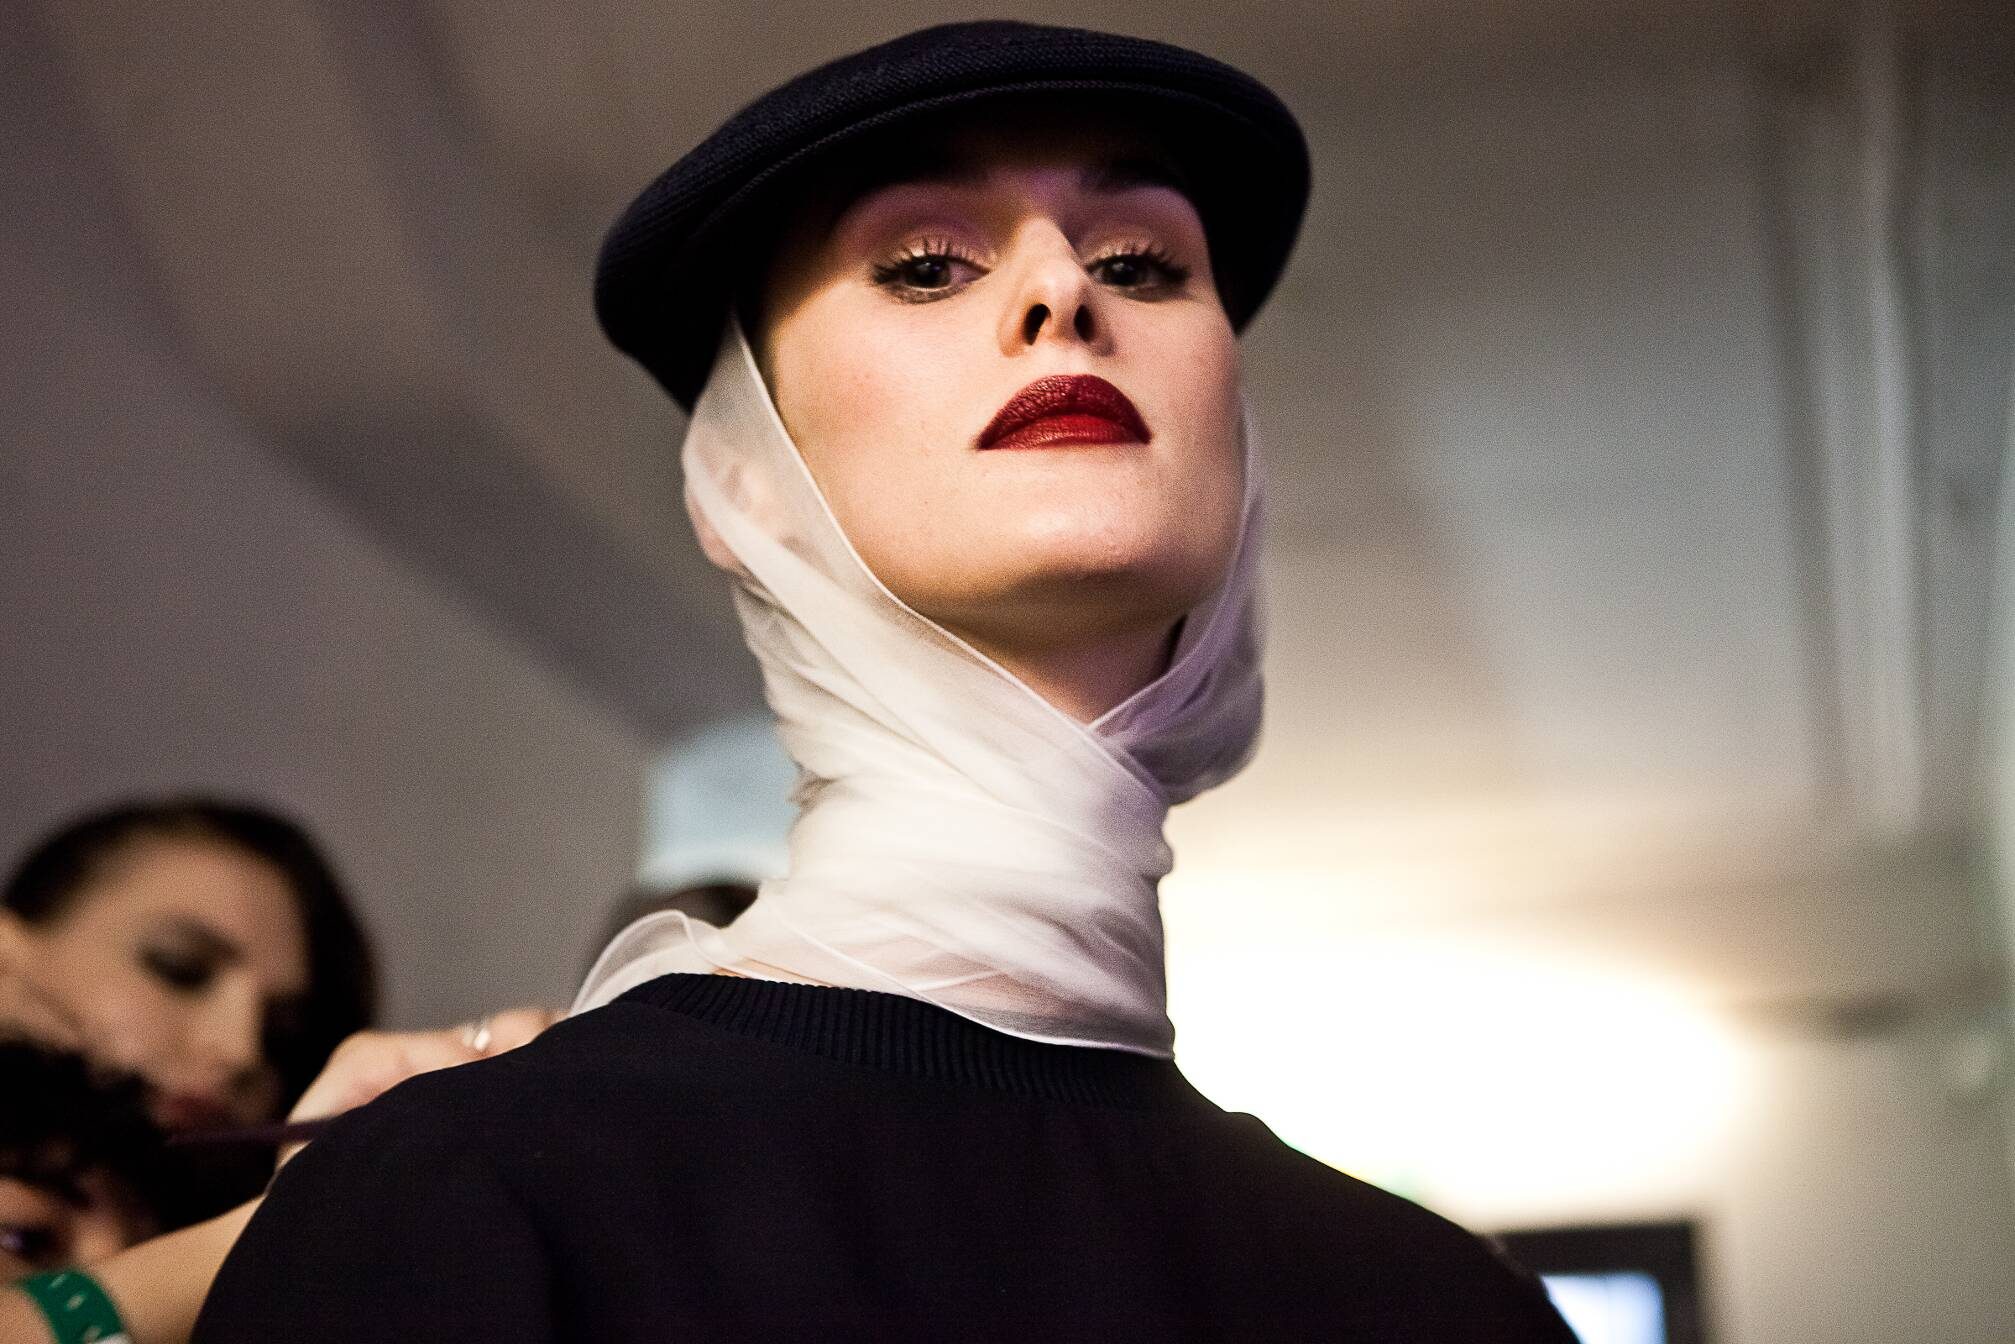 Backstage Jean Paul Gaultier Haute Couture Womenswear Model